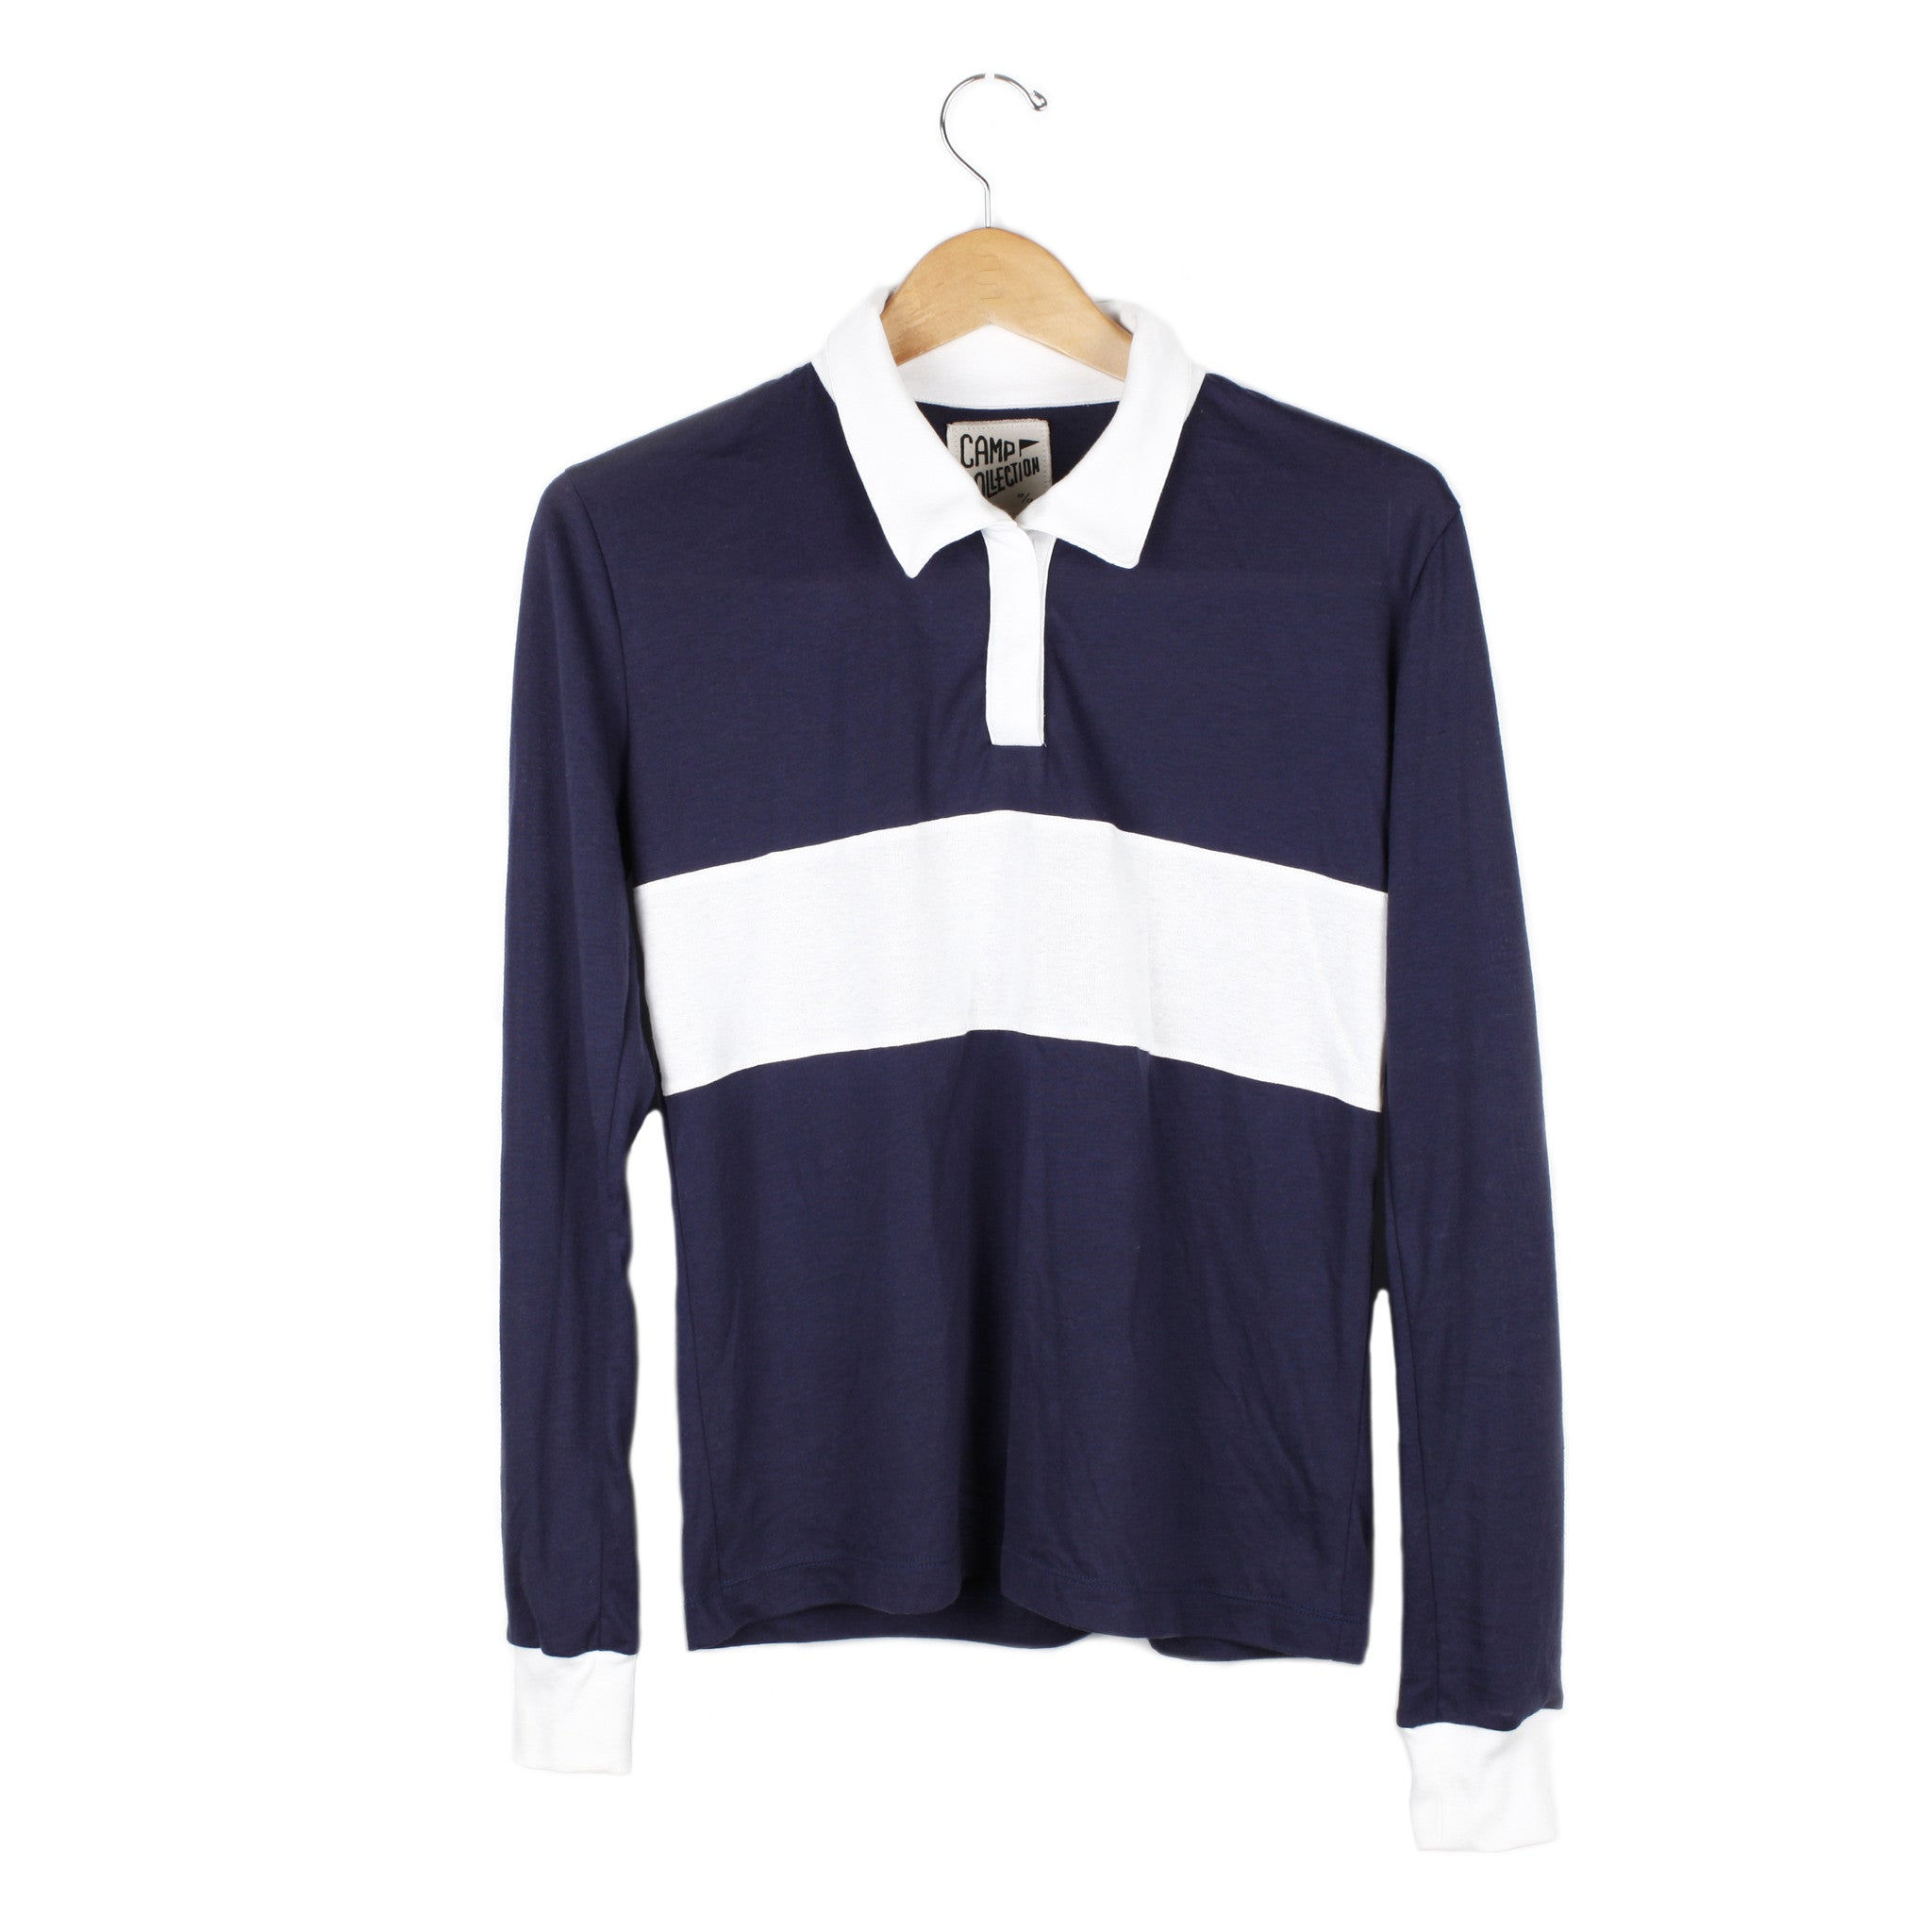 Miller Polo (view more colors) - SMALL / NAVY / VINTAGE WHITE - CAMP Collection - 1